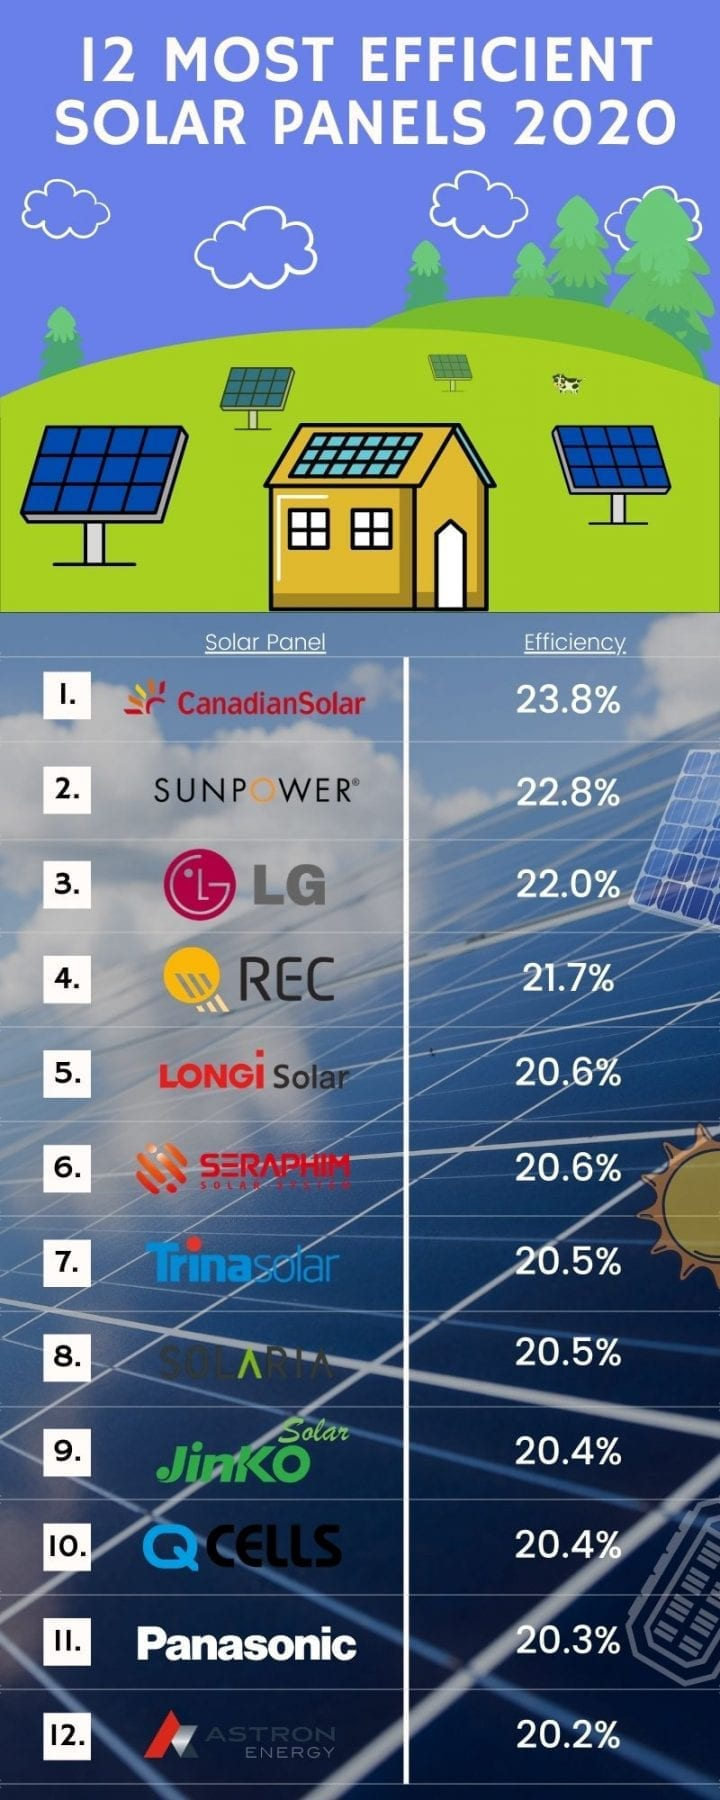 the most efficient solar panels in 2020